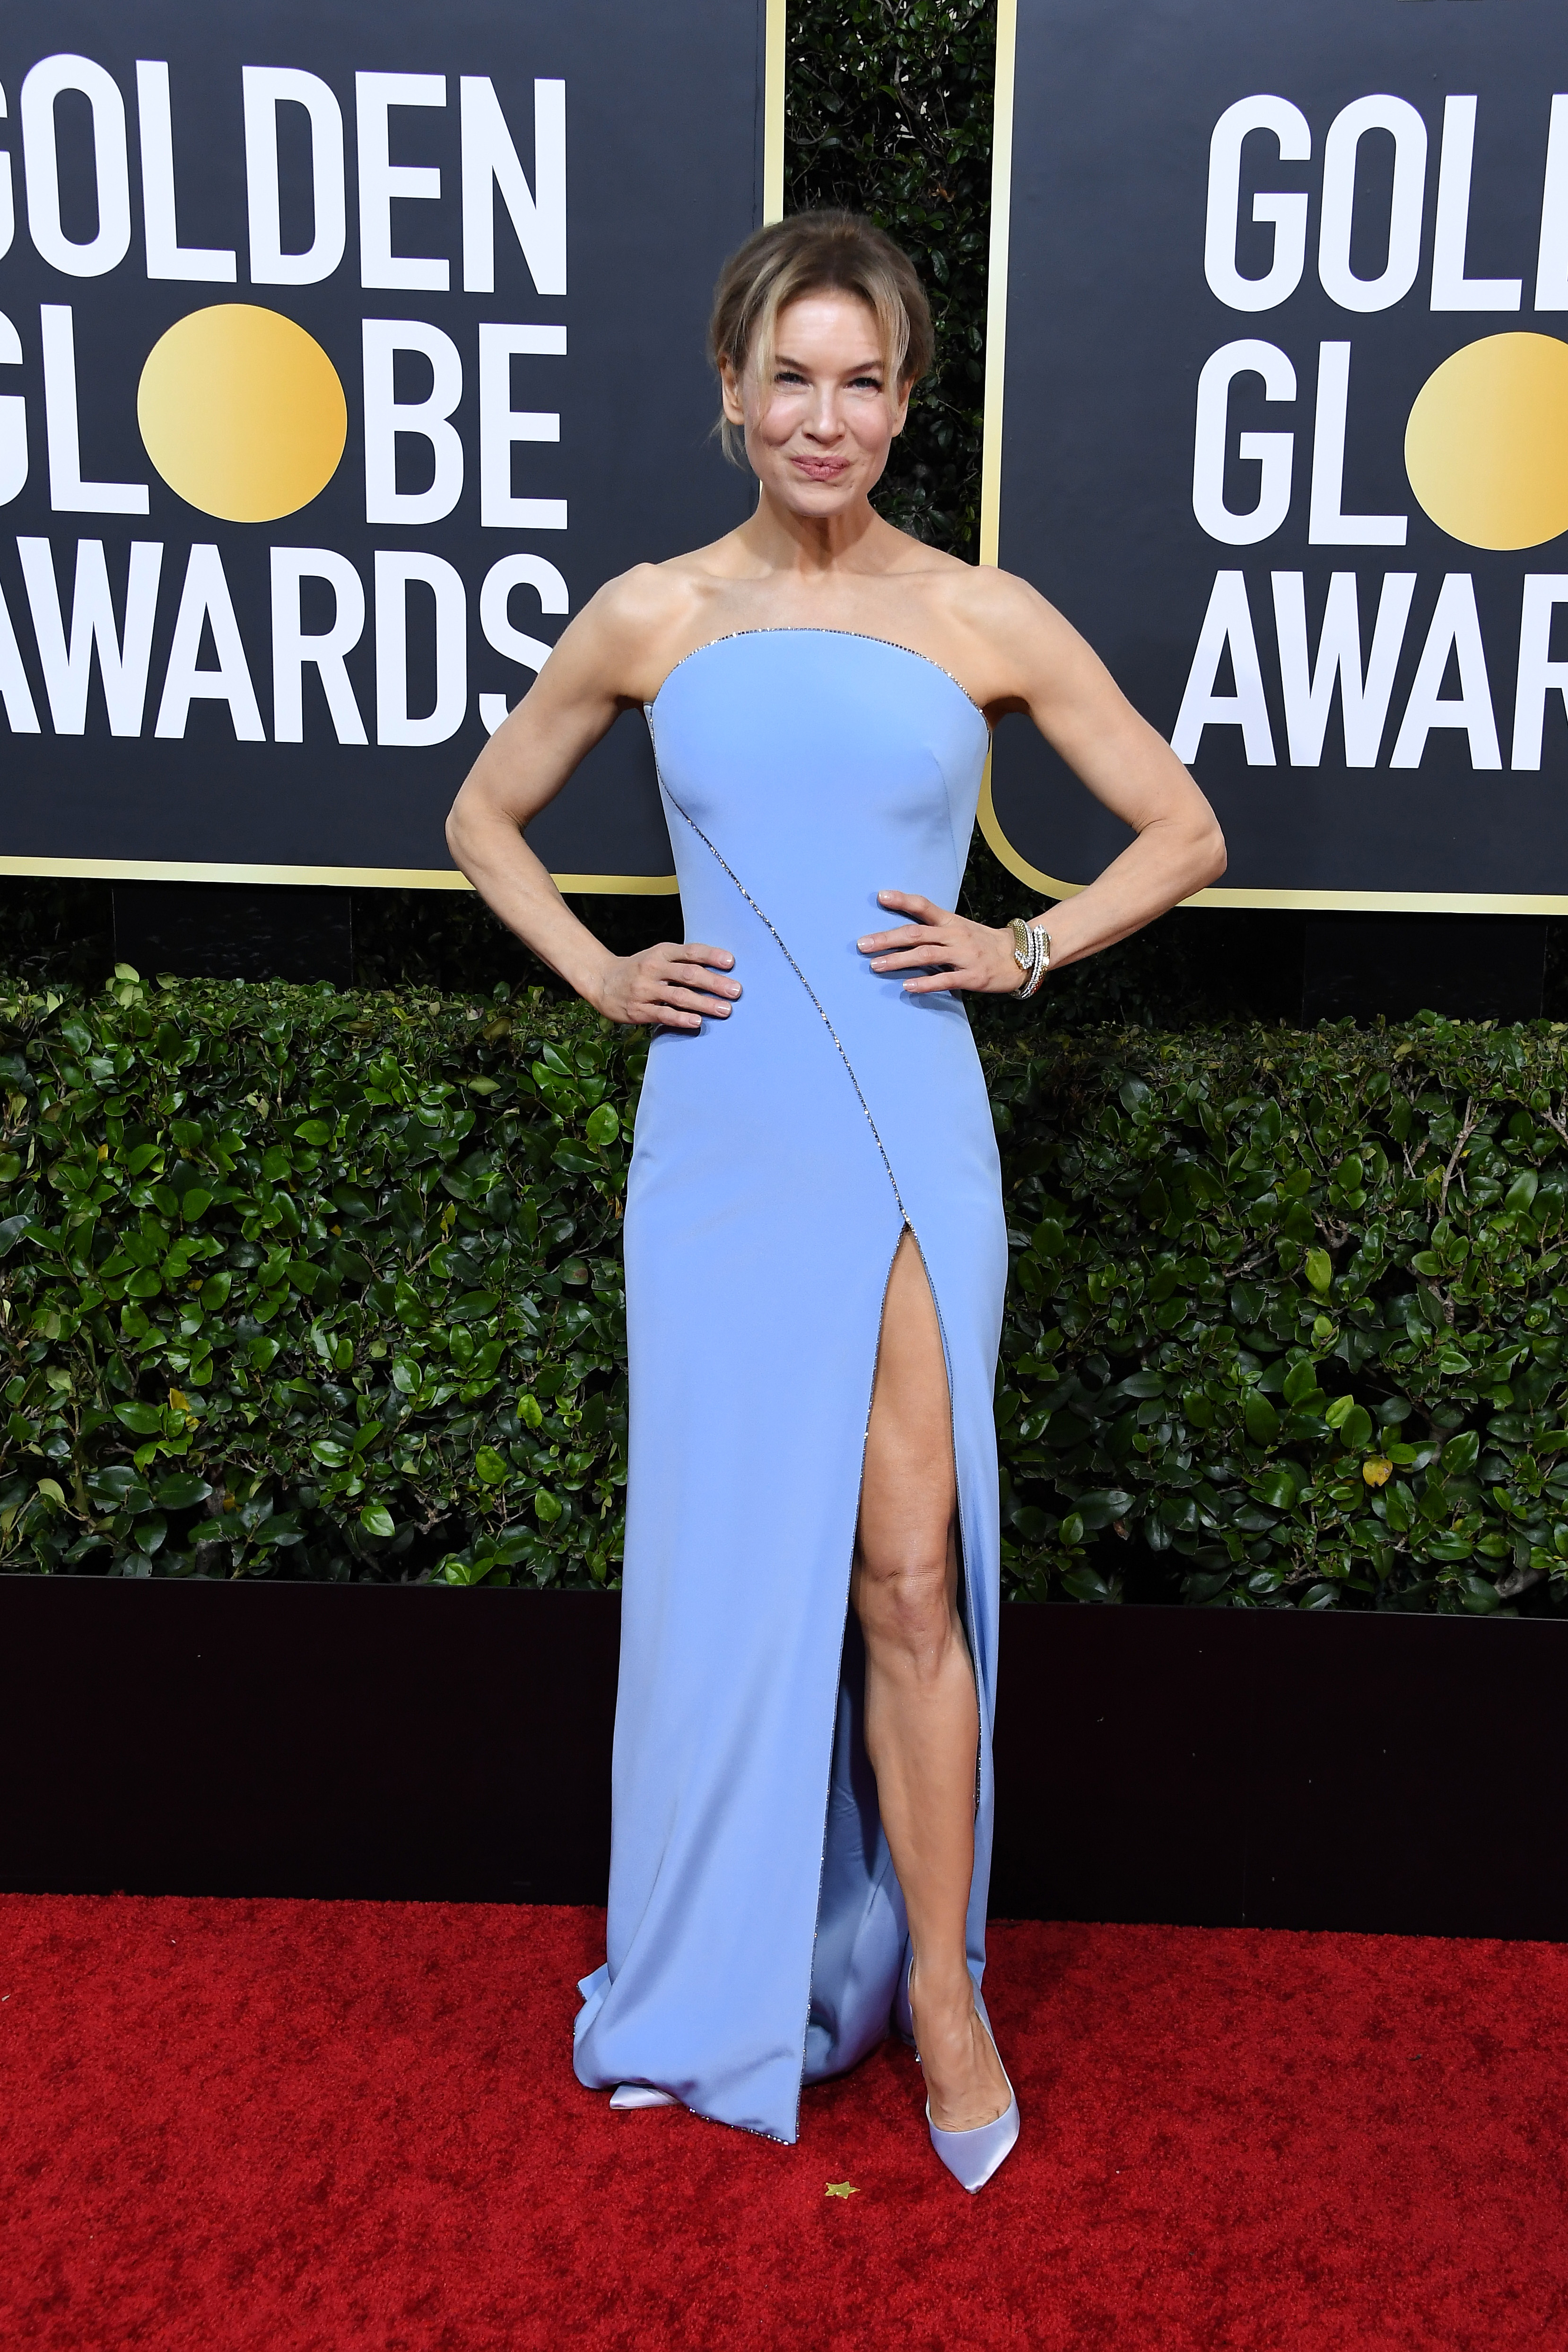 BEVERLY HILLS, CALIFORNIA - JANUARY 05: Renee Zellweger attends the 77th Annual Golden Globe Awards at The Beverly Hilton Hotel on January 05, 2020 in Beverly Hills, California. (Photo by Steve Granitz/WireImage)